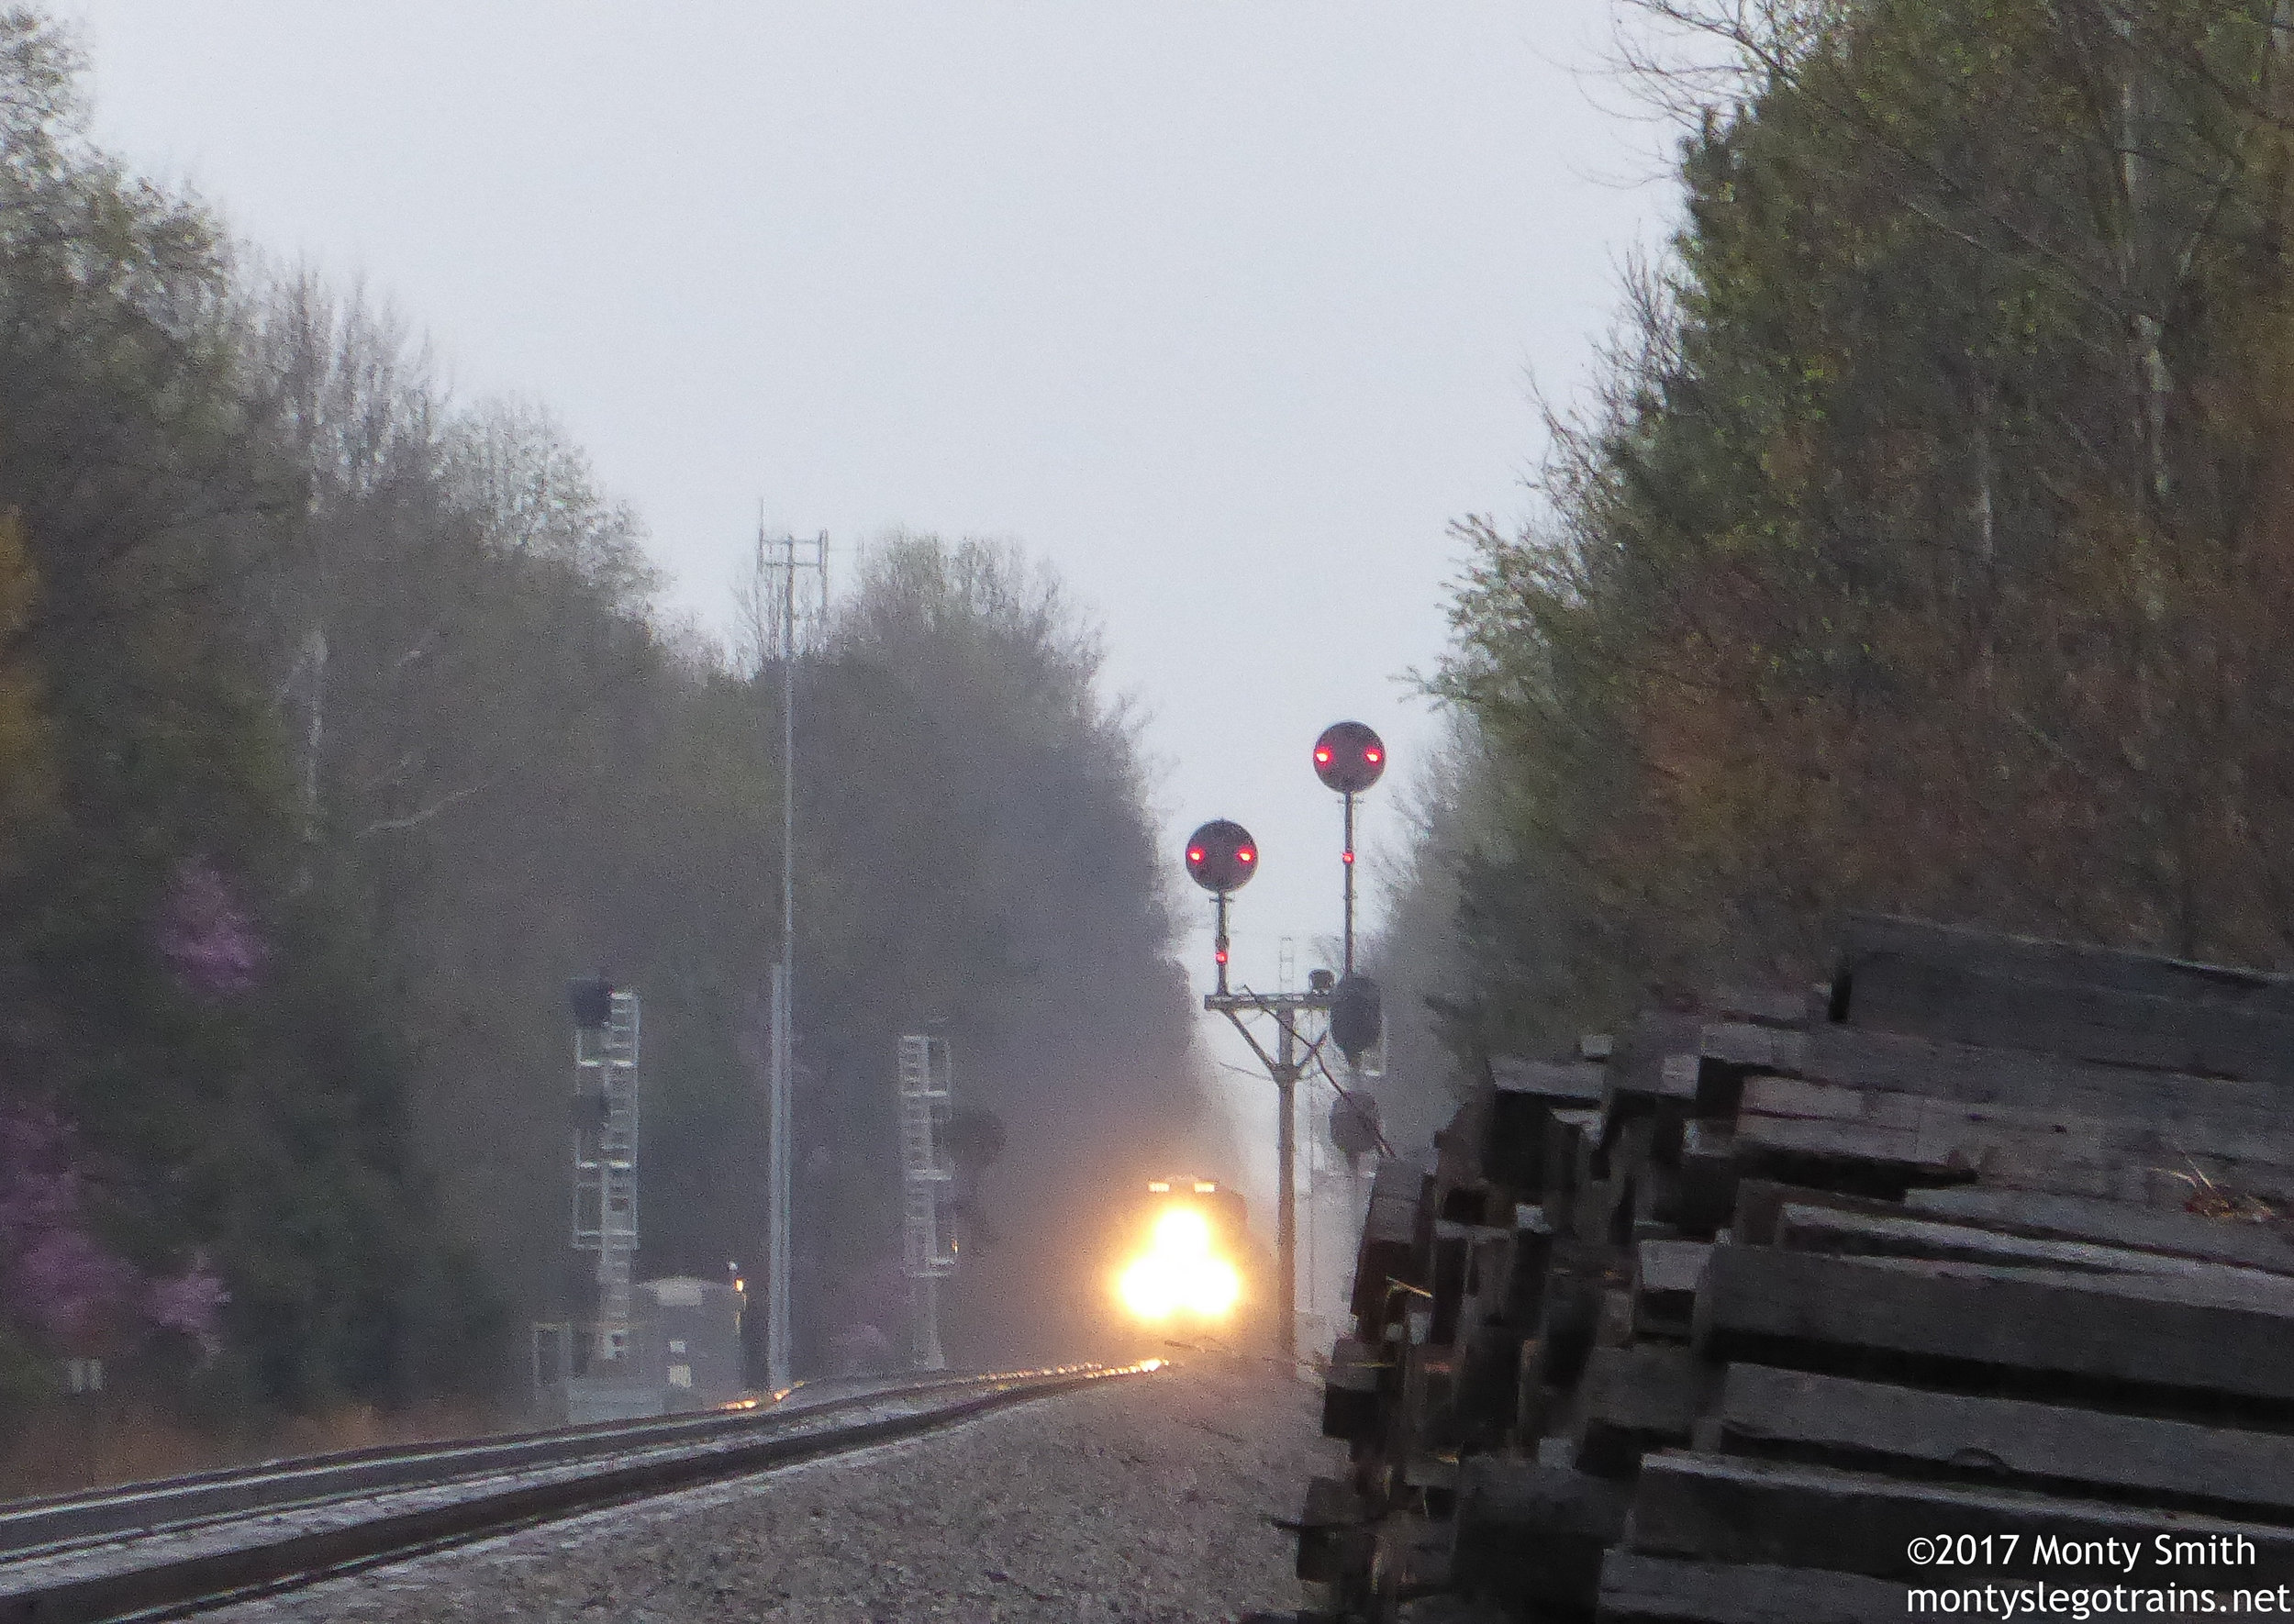 The circus train approaches through increasingly heavy rain, framed by soon-to-fall N&W CPL signals. Their replacements can be seen with signal heads turned 90 degrees. They will face the correct directions when placed into service.